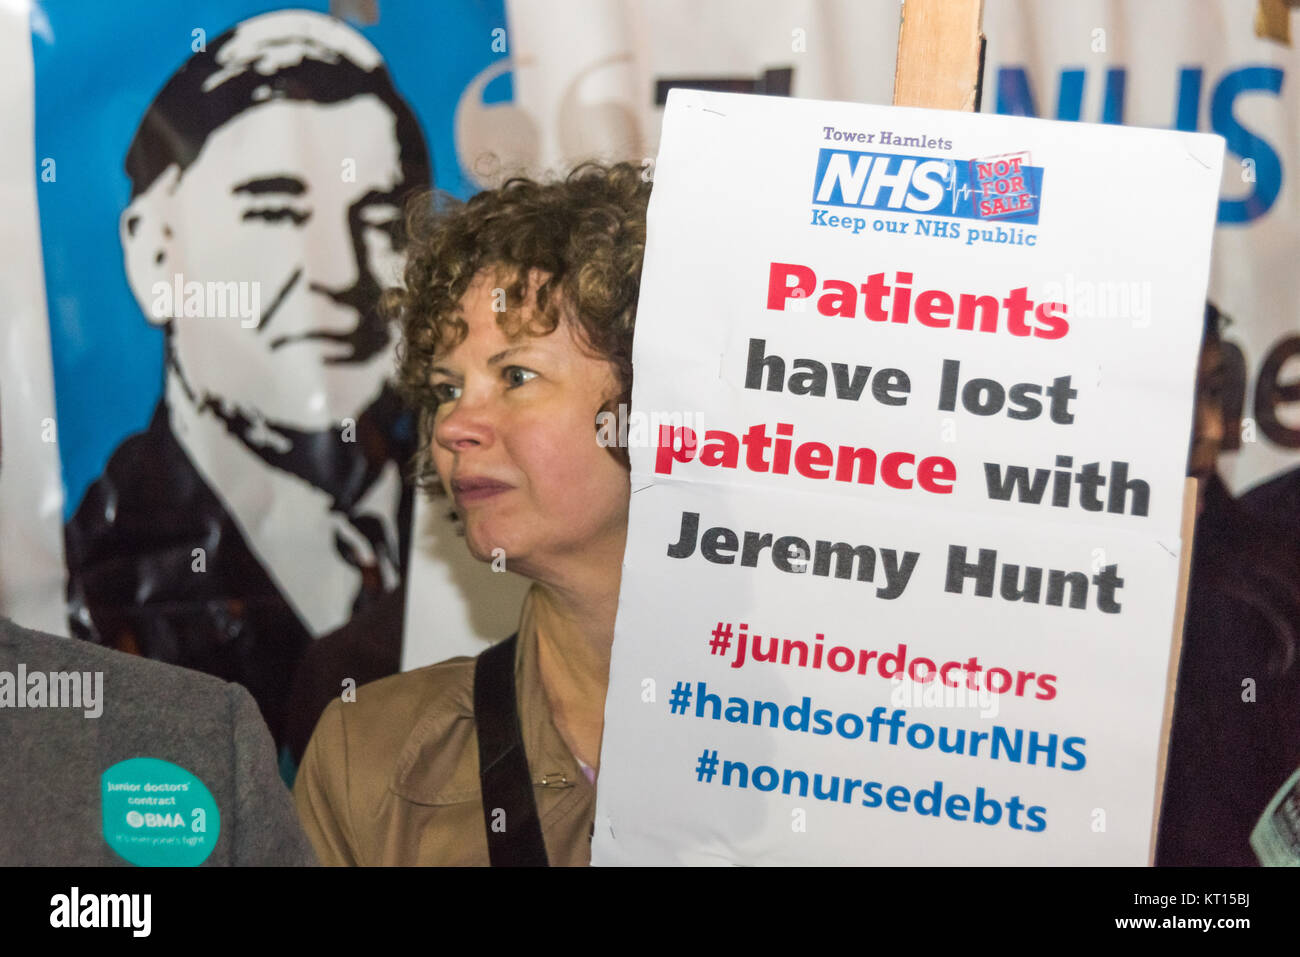 A woman in front of the image of Nye Bevan holds a poster 'Patients have lost patience with Jeremy Hunt' - Stock Image